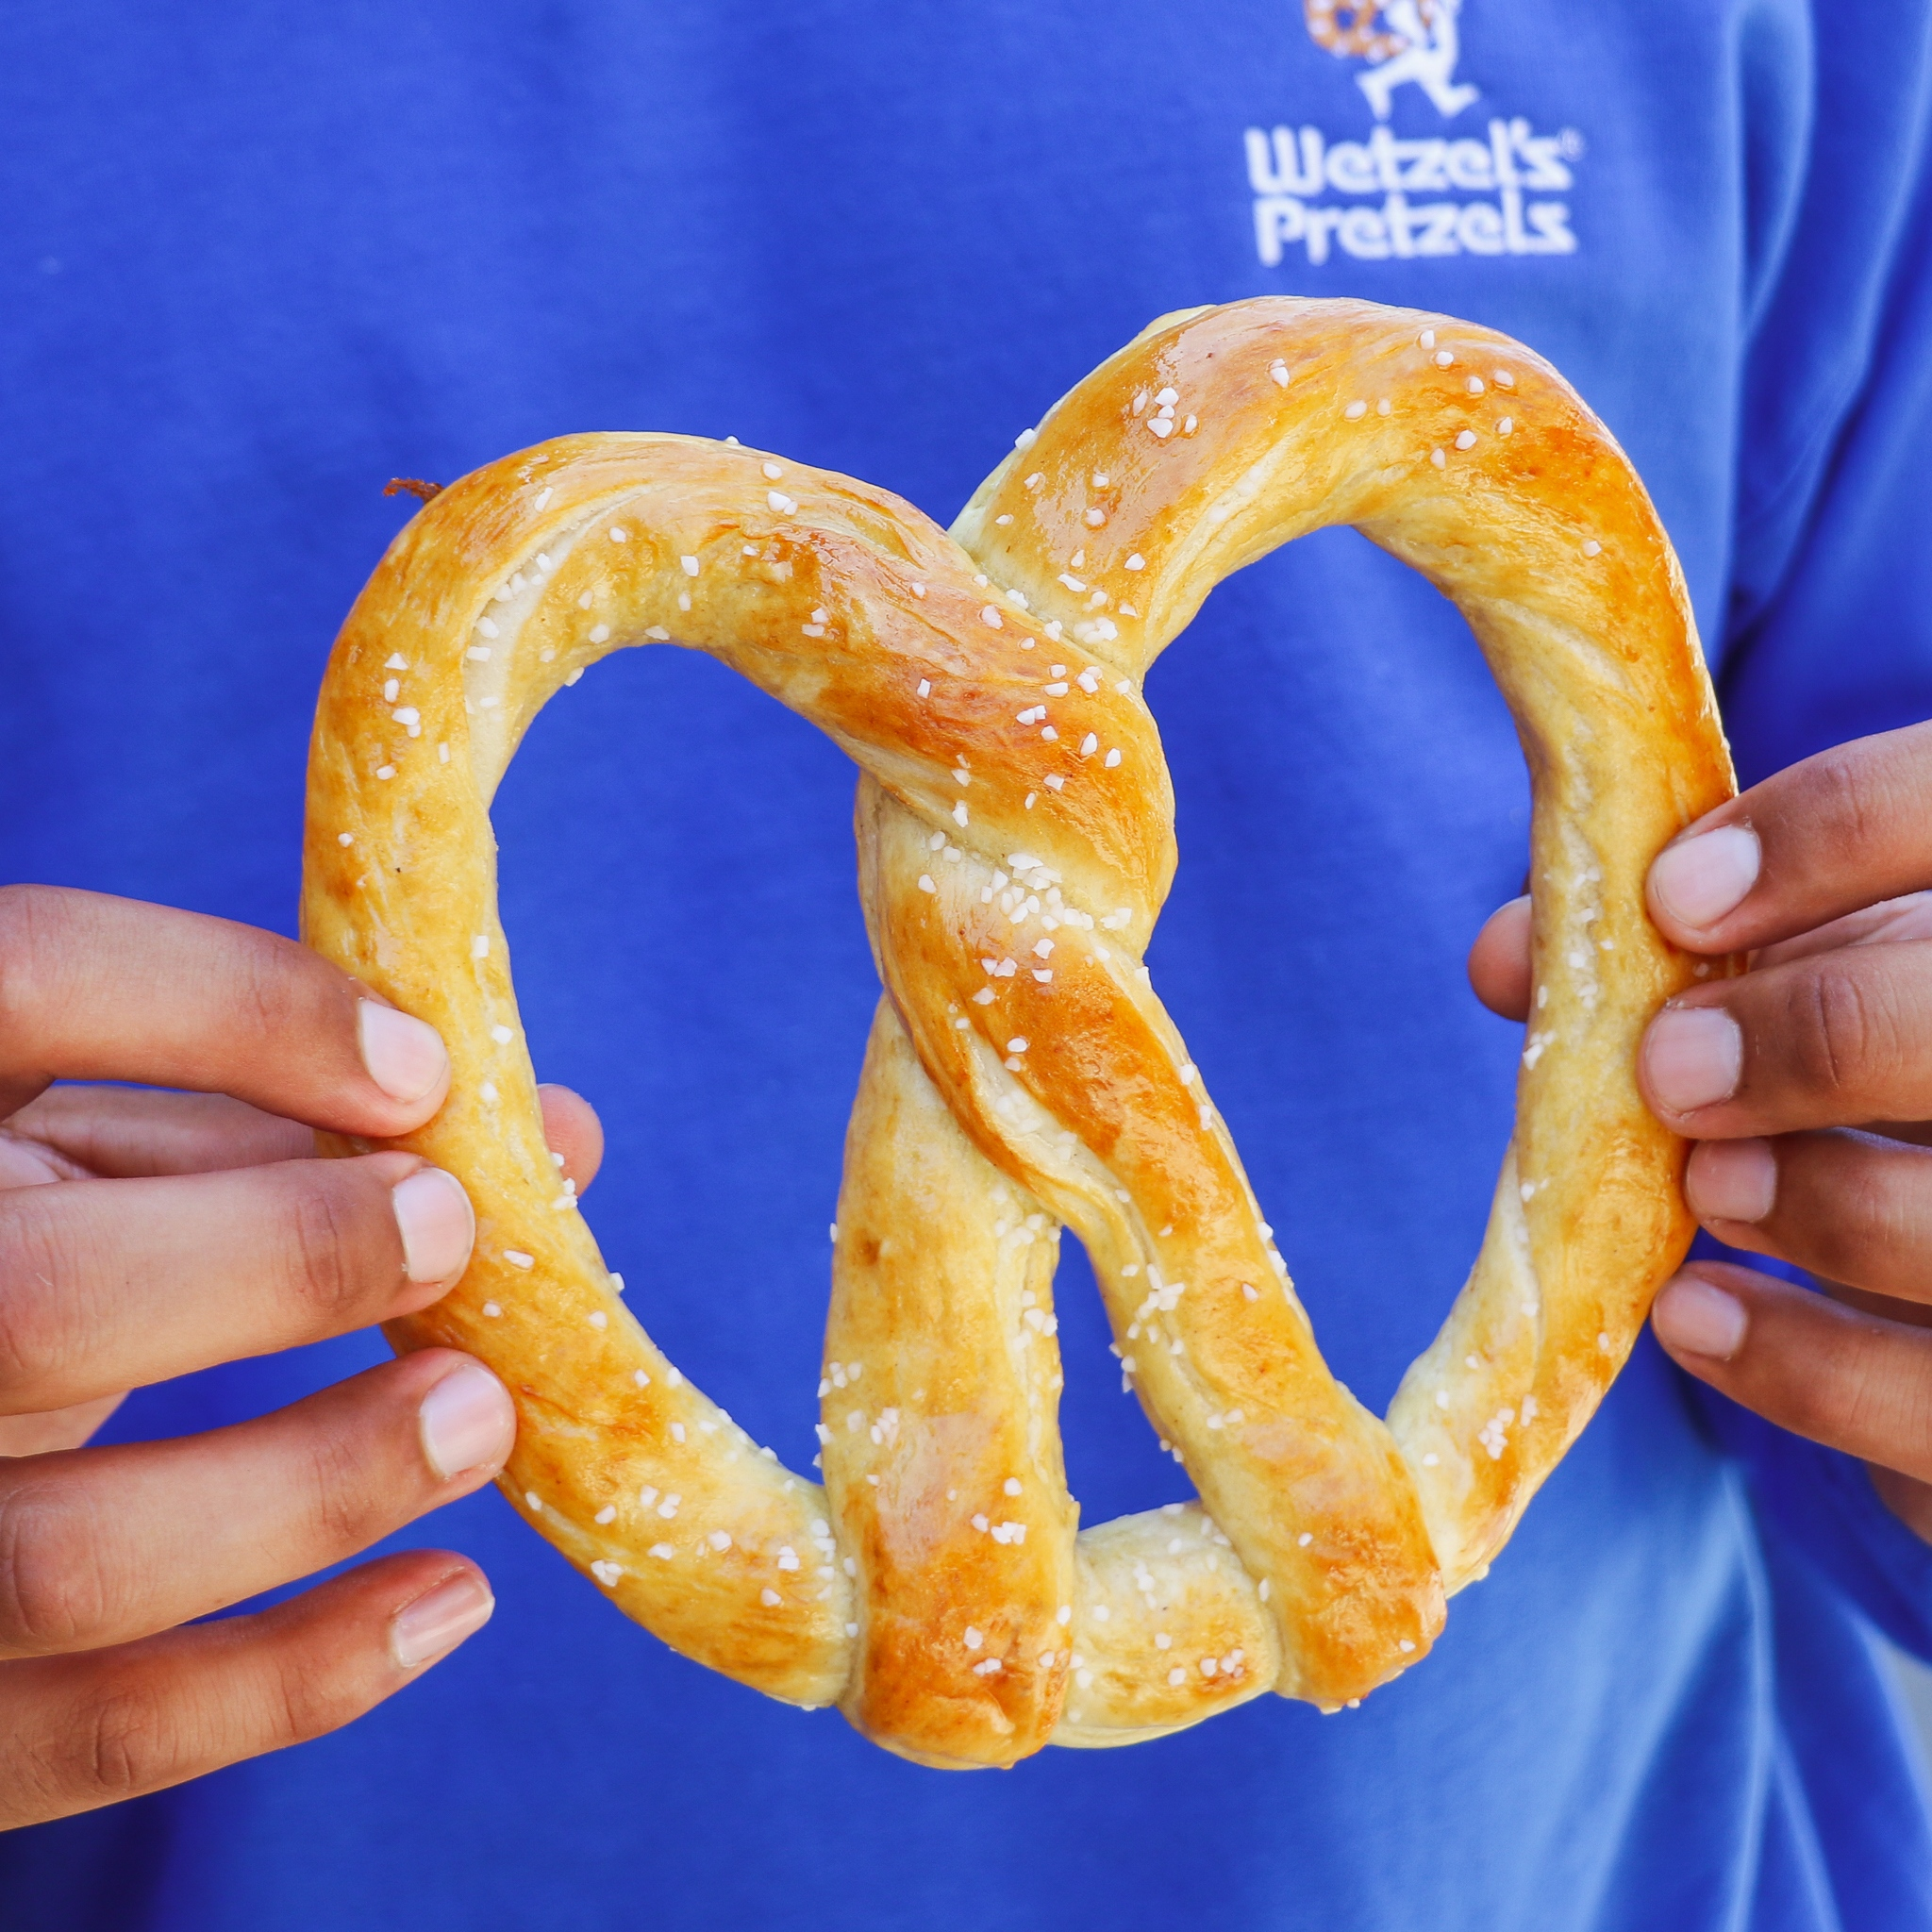 Person wearing a Wetzels Pretzel t-shirt holding a pretzel